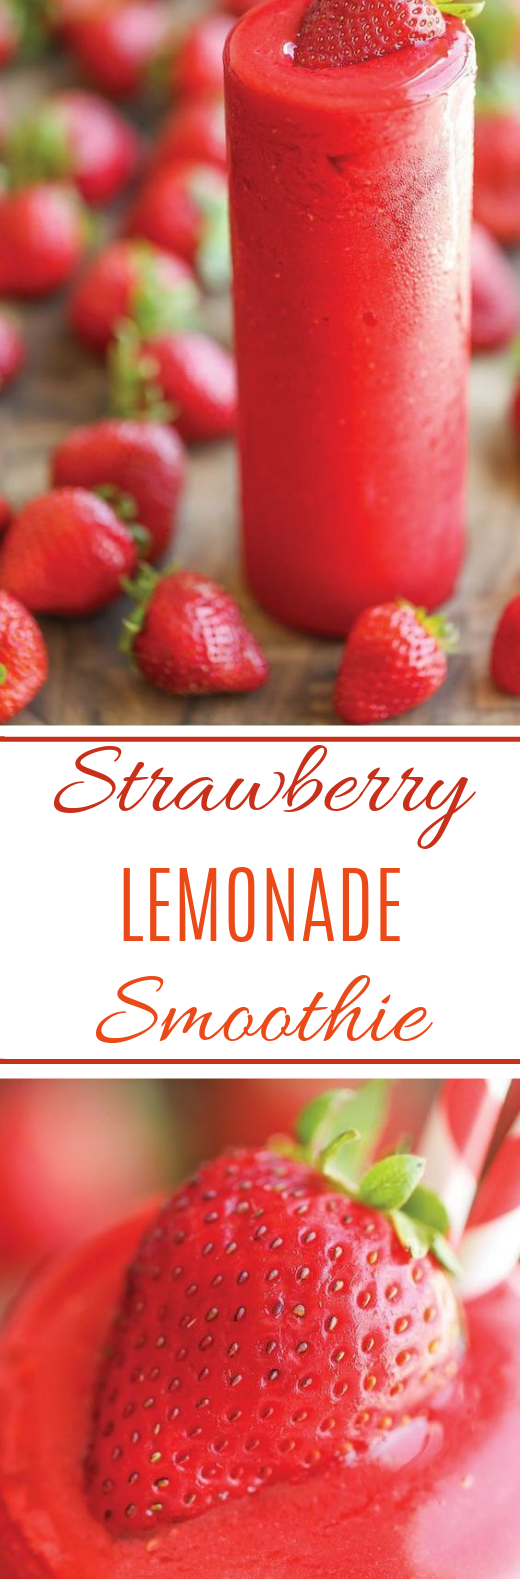 Strawberry Lemonade Smoothie #summer #drinks